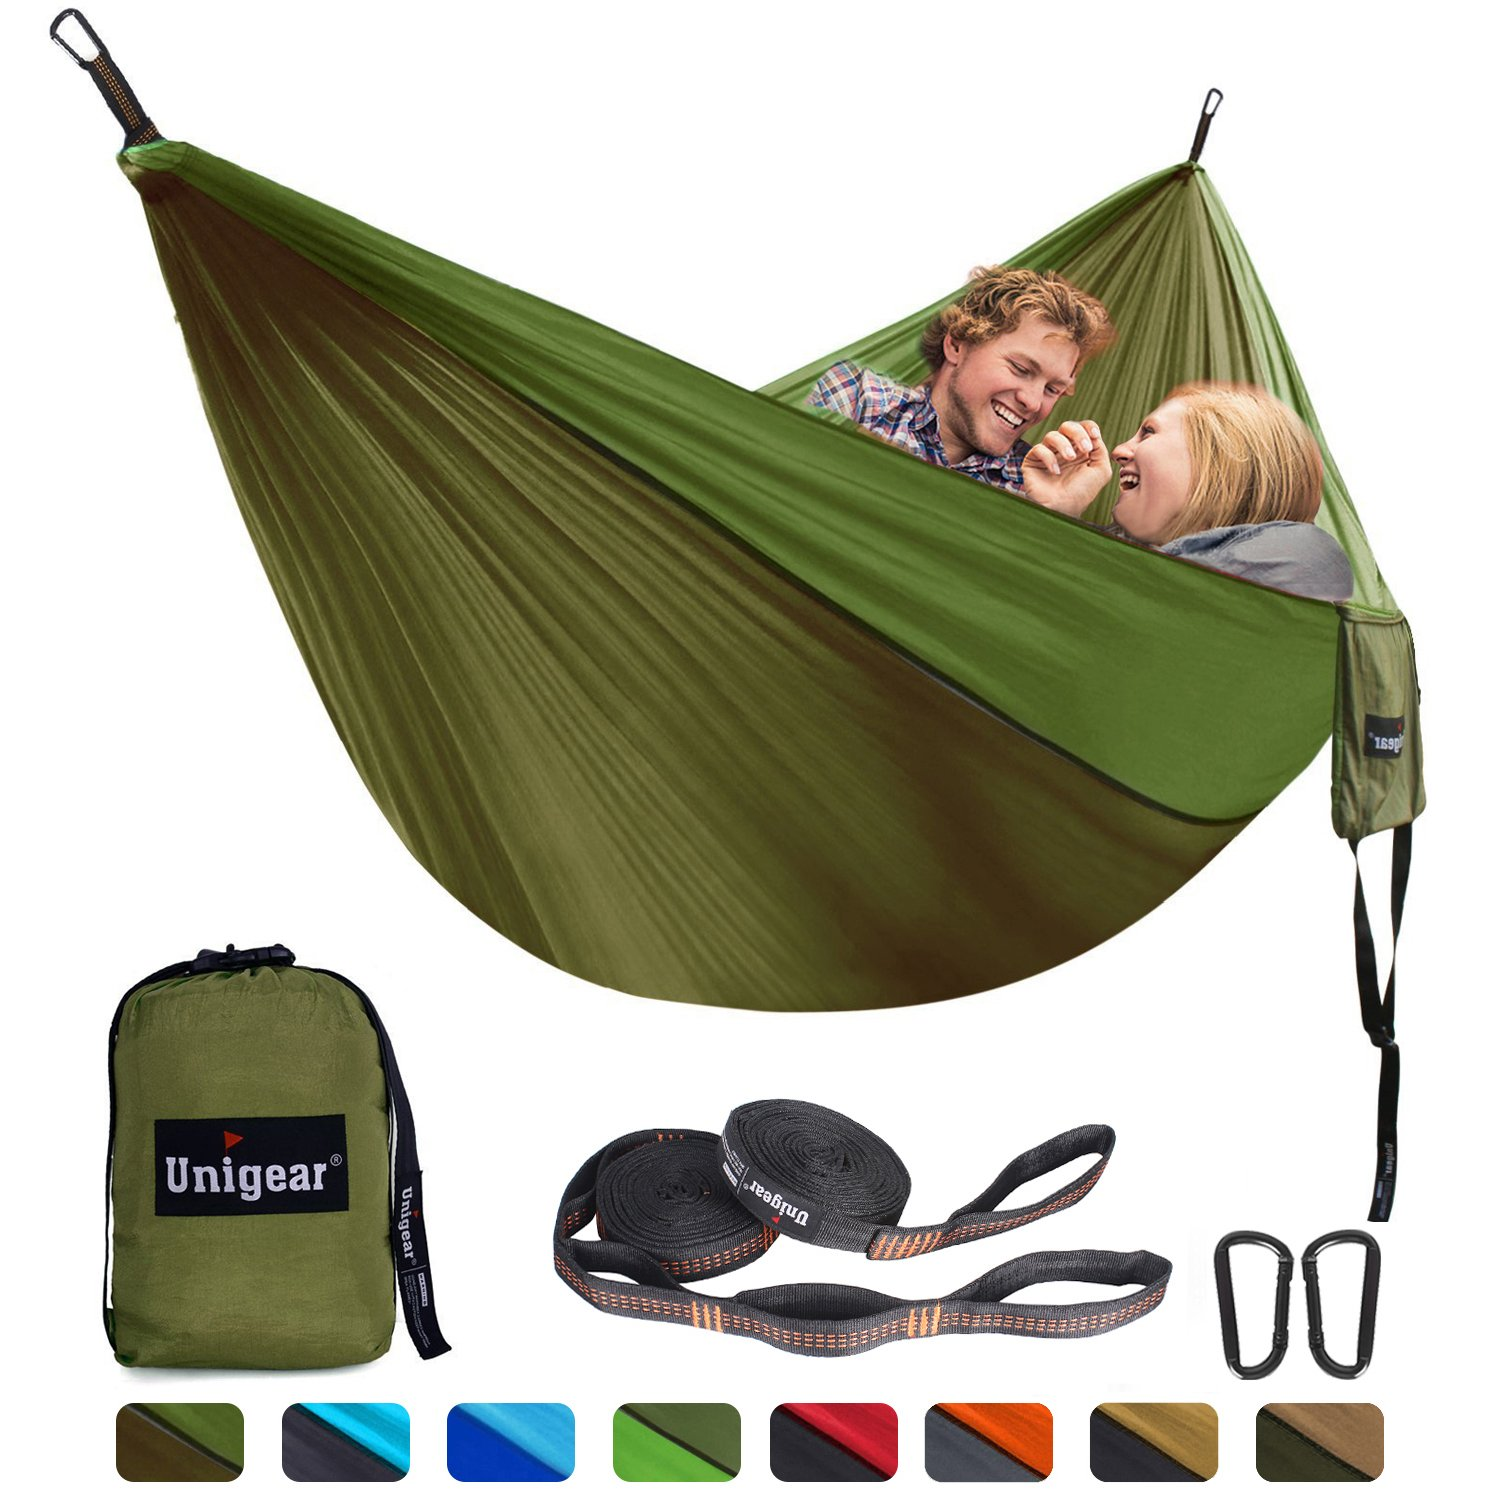 Unigear Hammock, Single & Double Camping Hammock, Portable Lightweight Parachute Nylon Hammock with Tree Straps for Backpacking, Camping, Travel, Beach, Garden (Oliver Green/Army Green) by Unigear